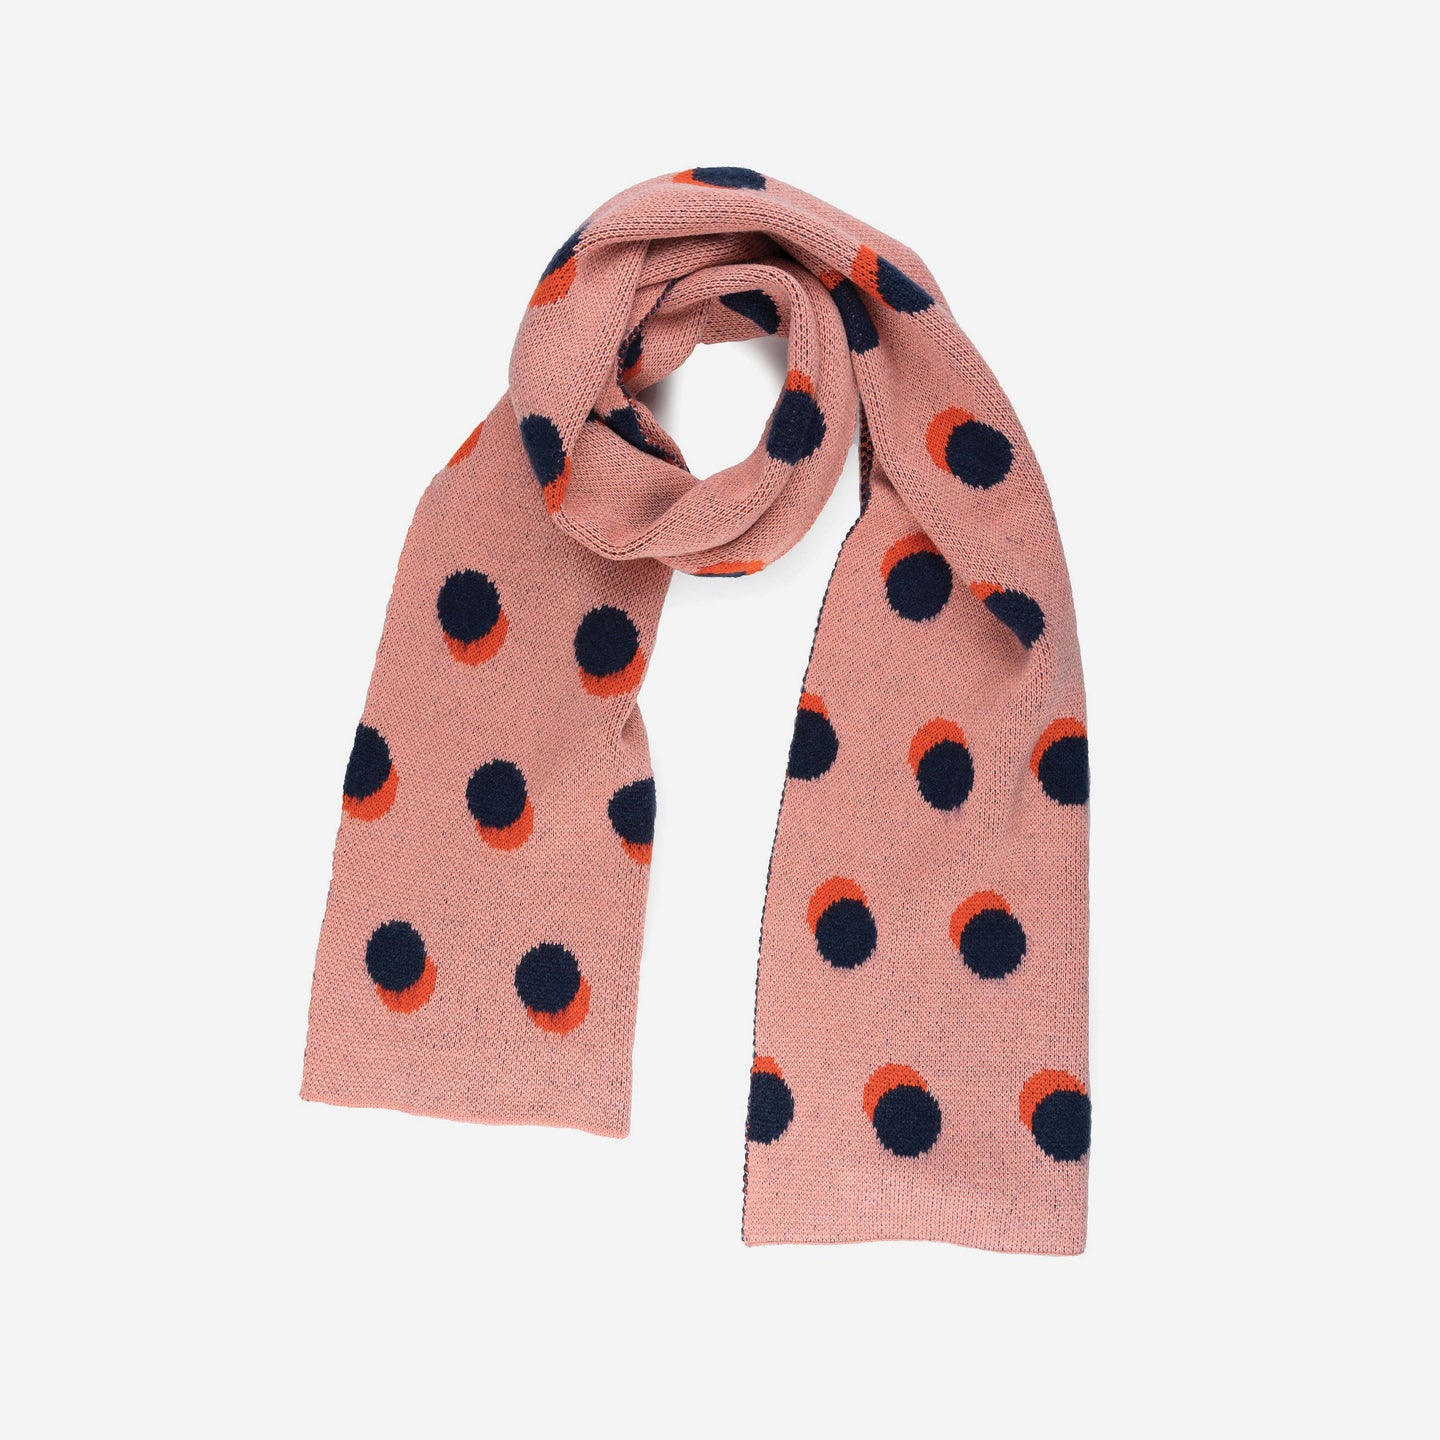 Eclipse Dot pattern scarf polka dot